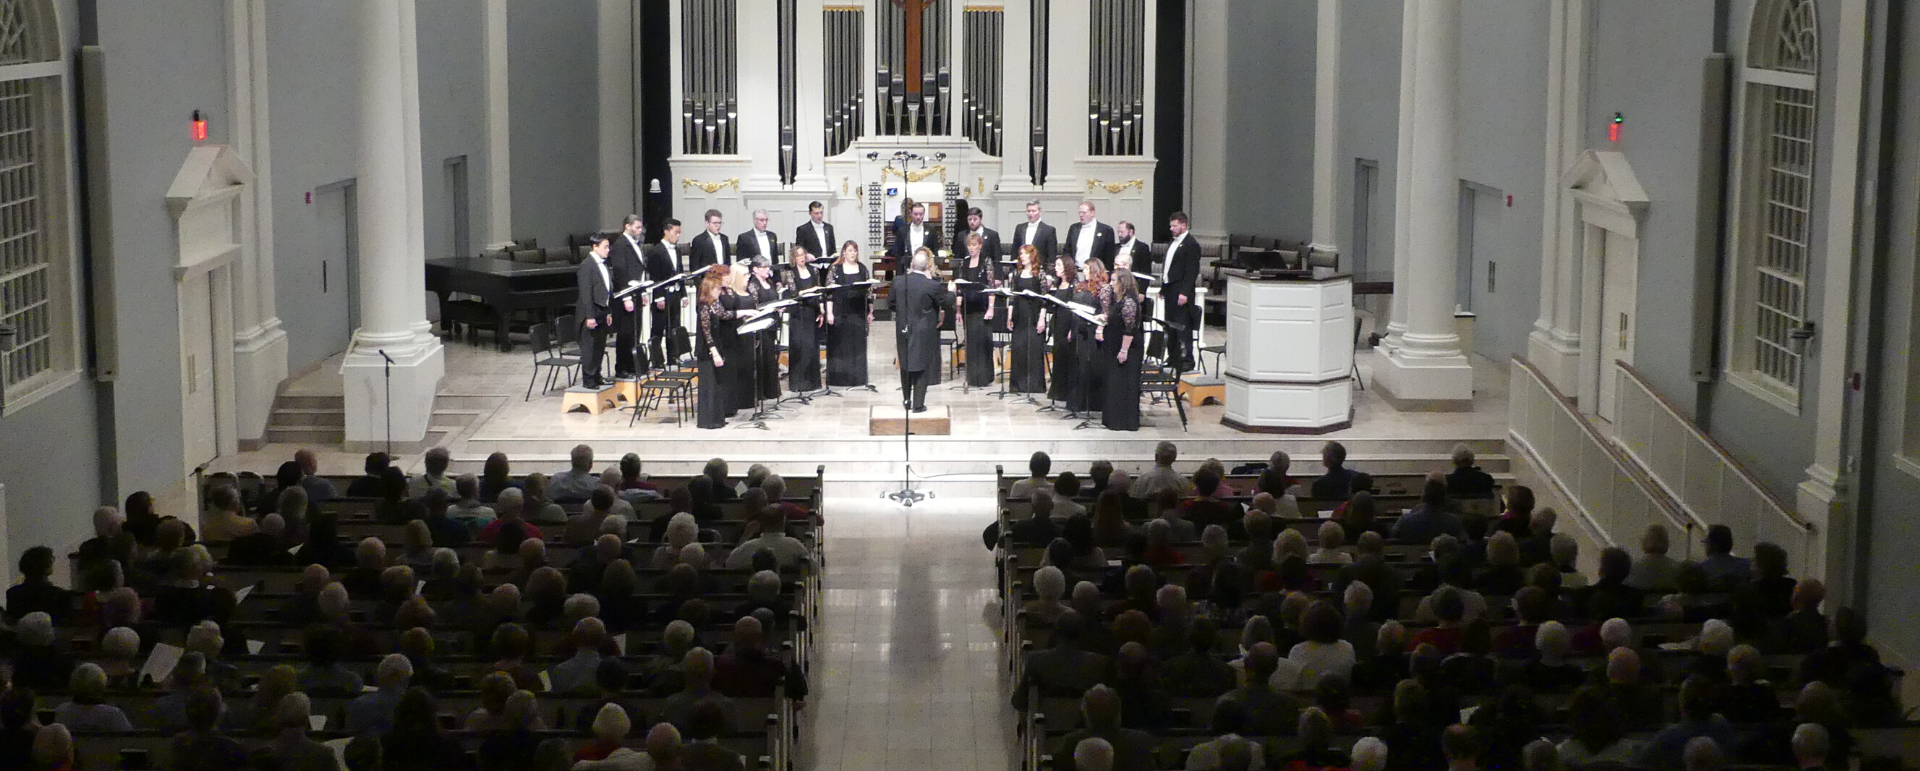 The Kansas City Chorale